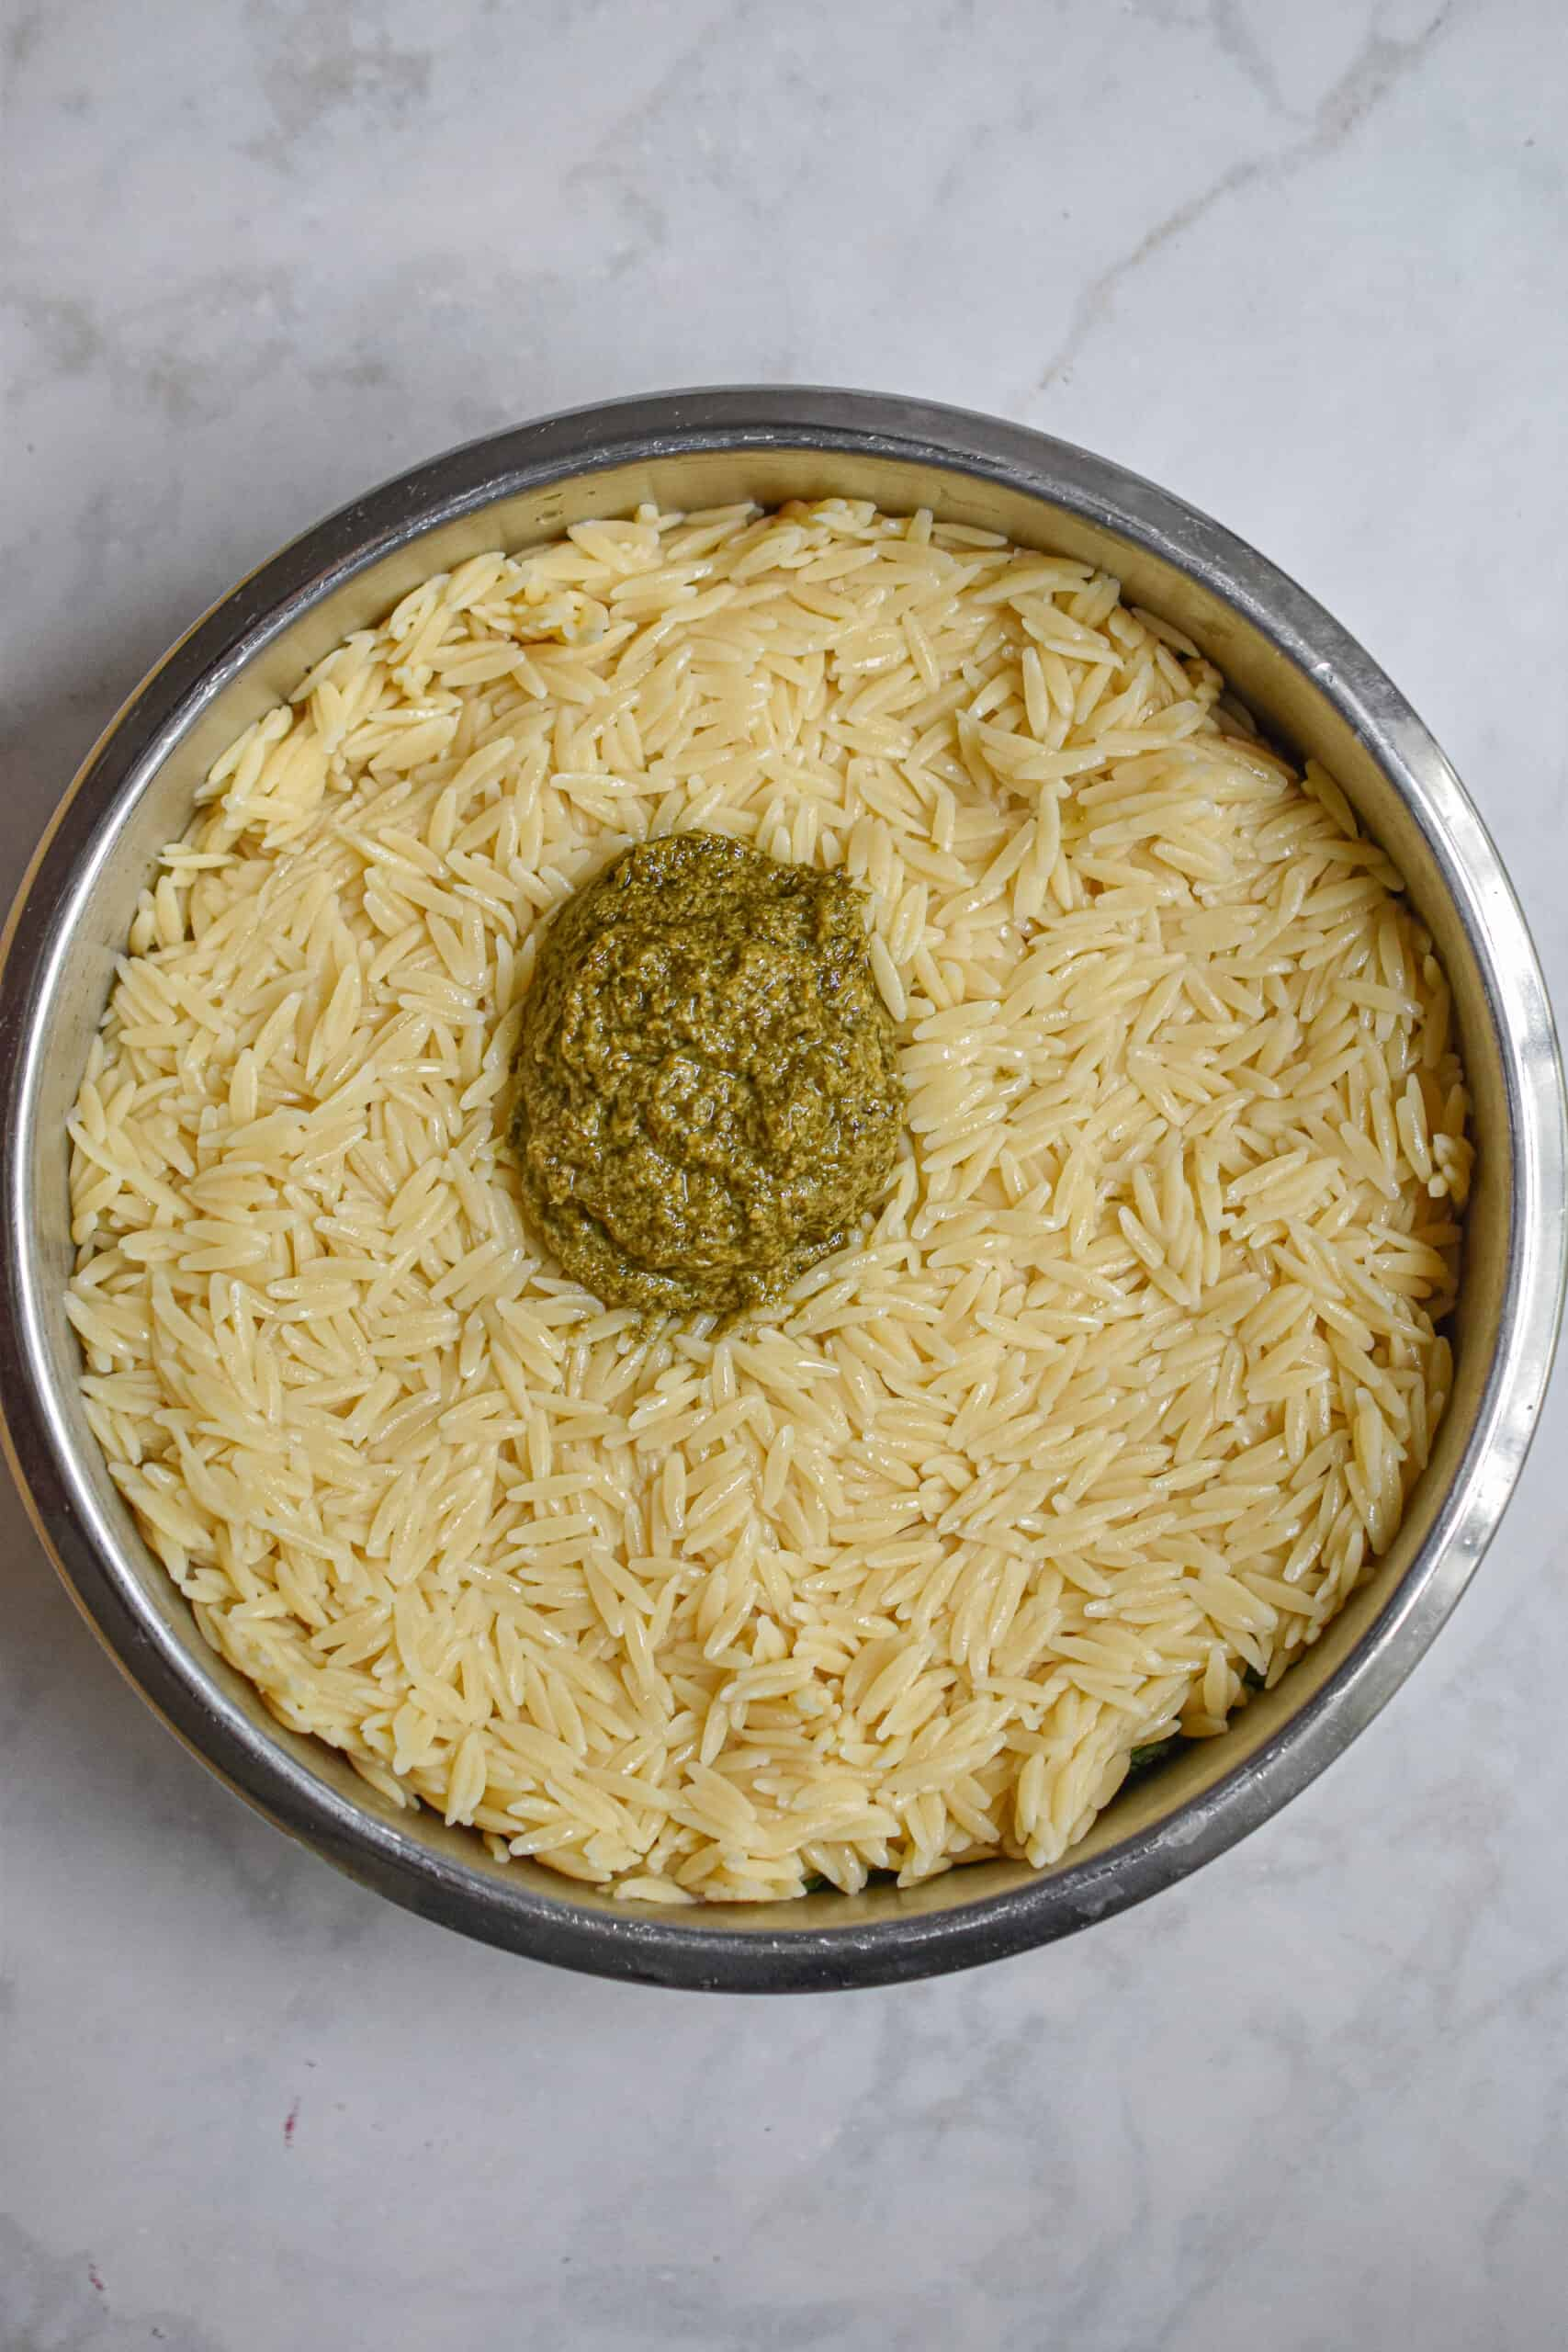 Add the orzo and pesto to the bowl